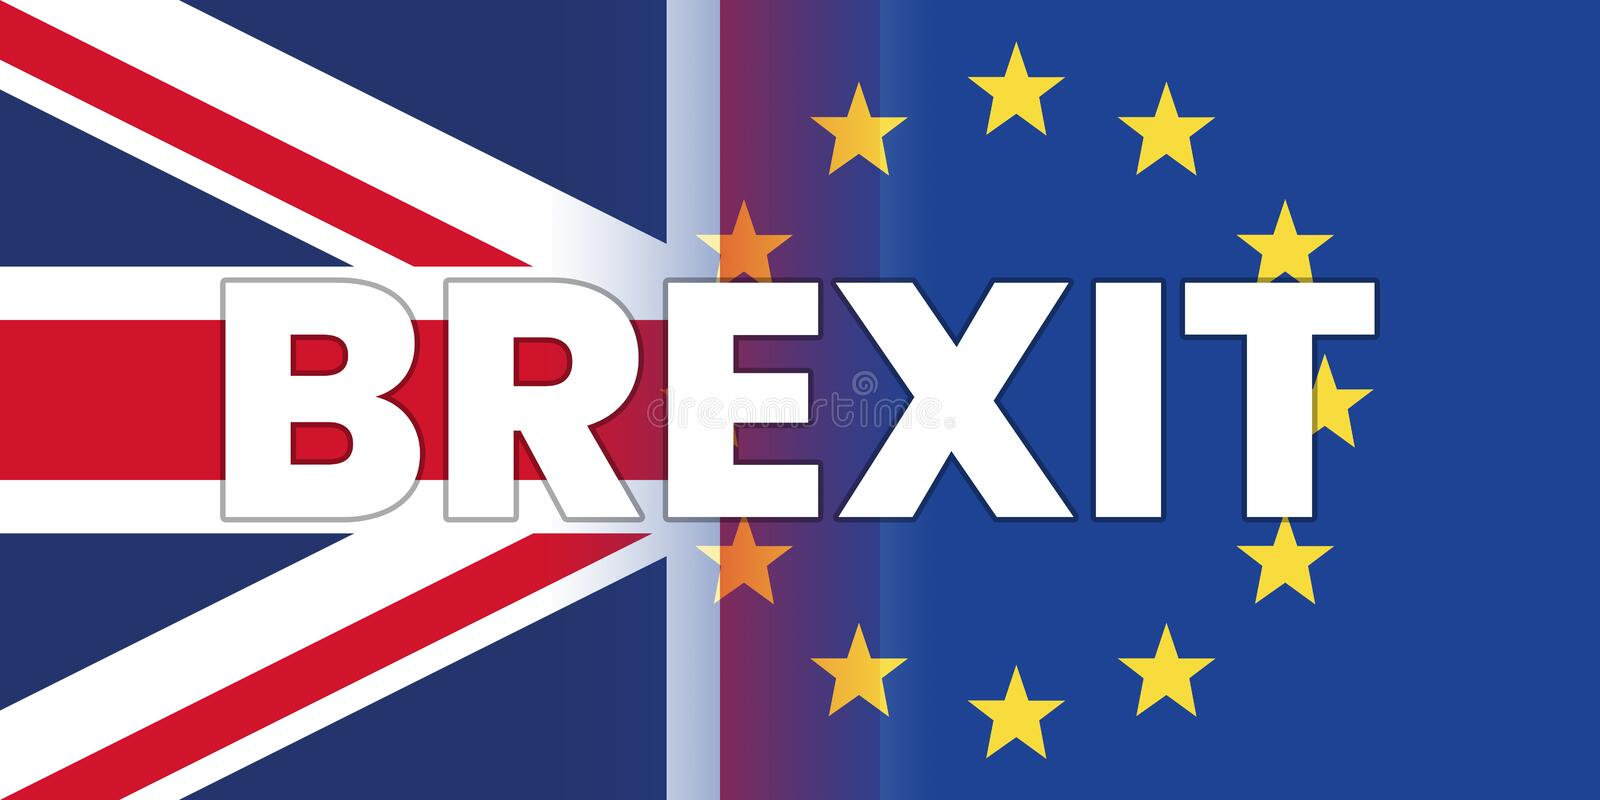 Brexit Concept with UK Flag and European Union Flag with BREXIT Wording stock illustration